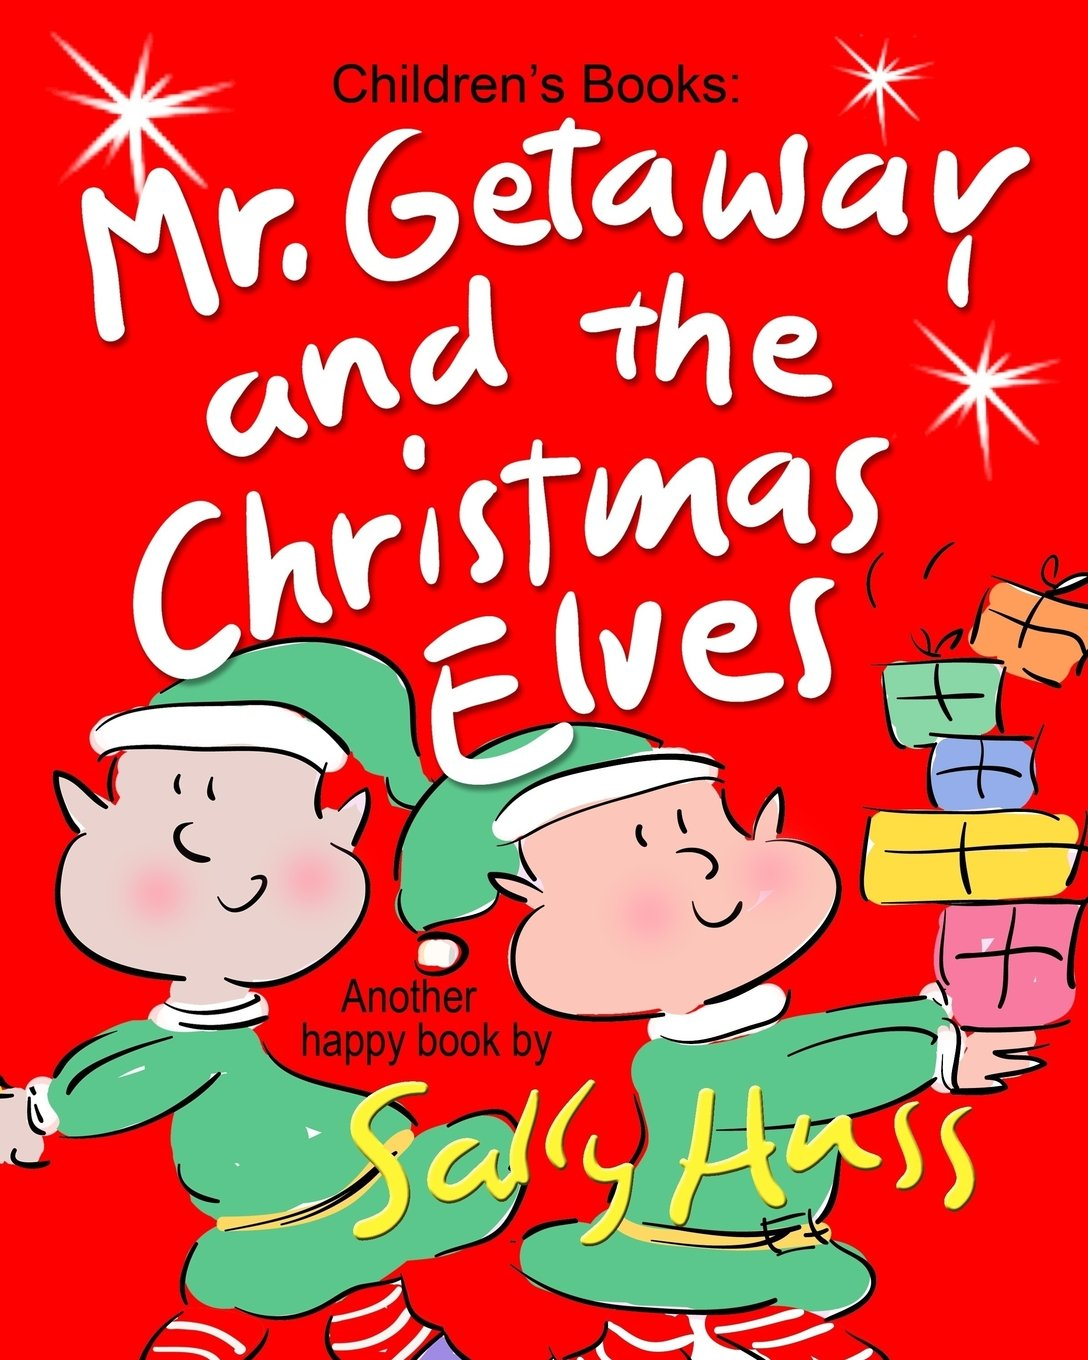 Mr. Getaway and the Christmas Elves: (Adorable, Rhyming Bedtime Story/Picture Book for Beginner Readers About Working Happily and Giving Freely, Ages 2-8) pdf epub